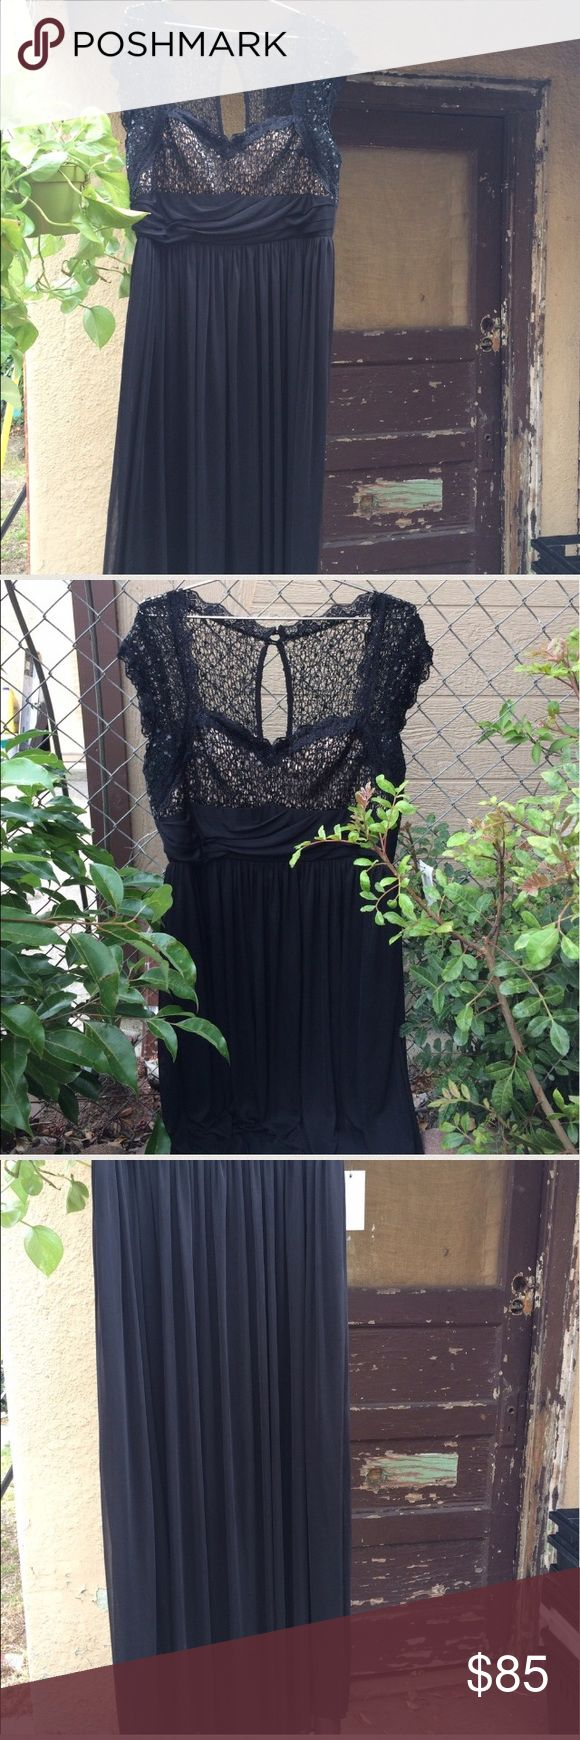 Black plus size formal dress XL brand new I paid $140 for it Dresses Wedding